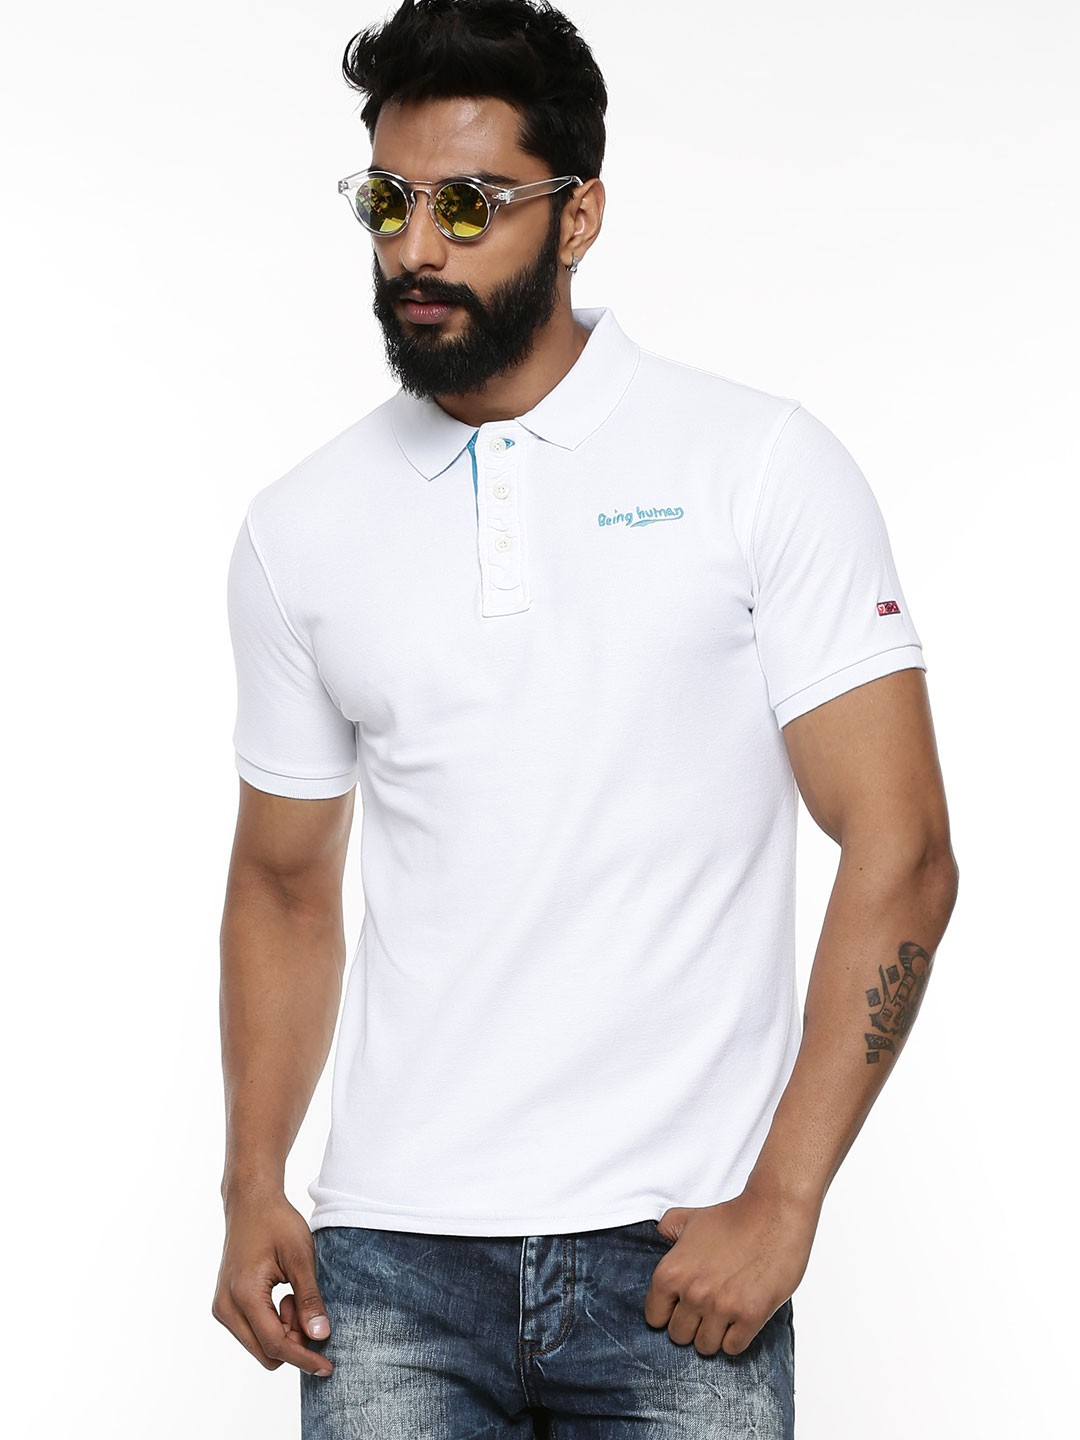 Buy being human basic polo shirt for men men 39 s white for Being human t shirts buy online india